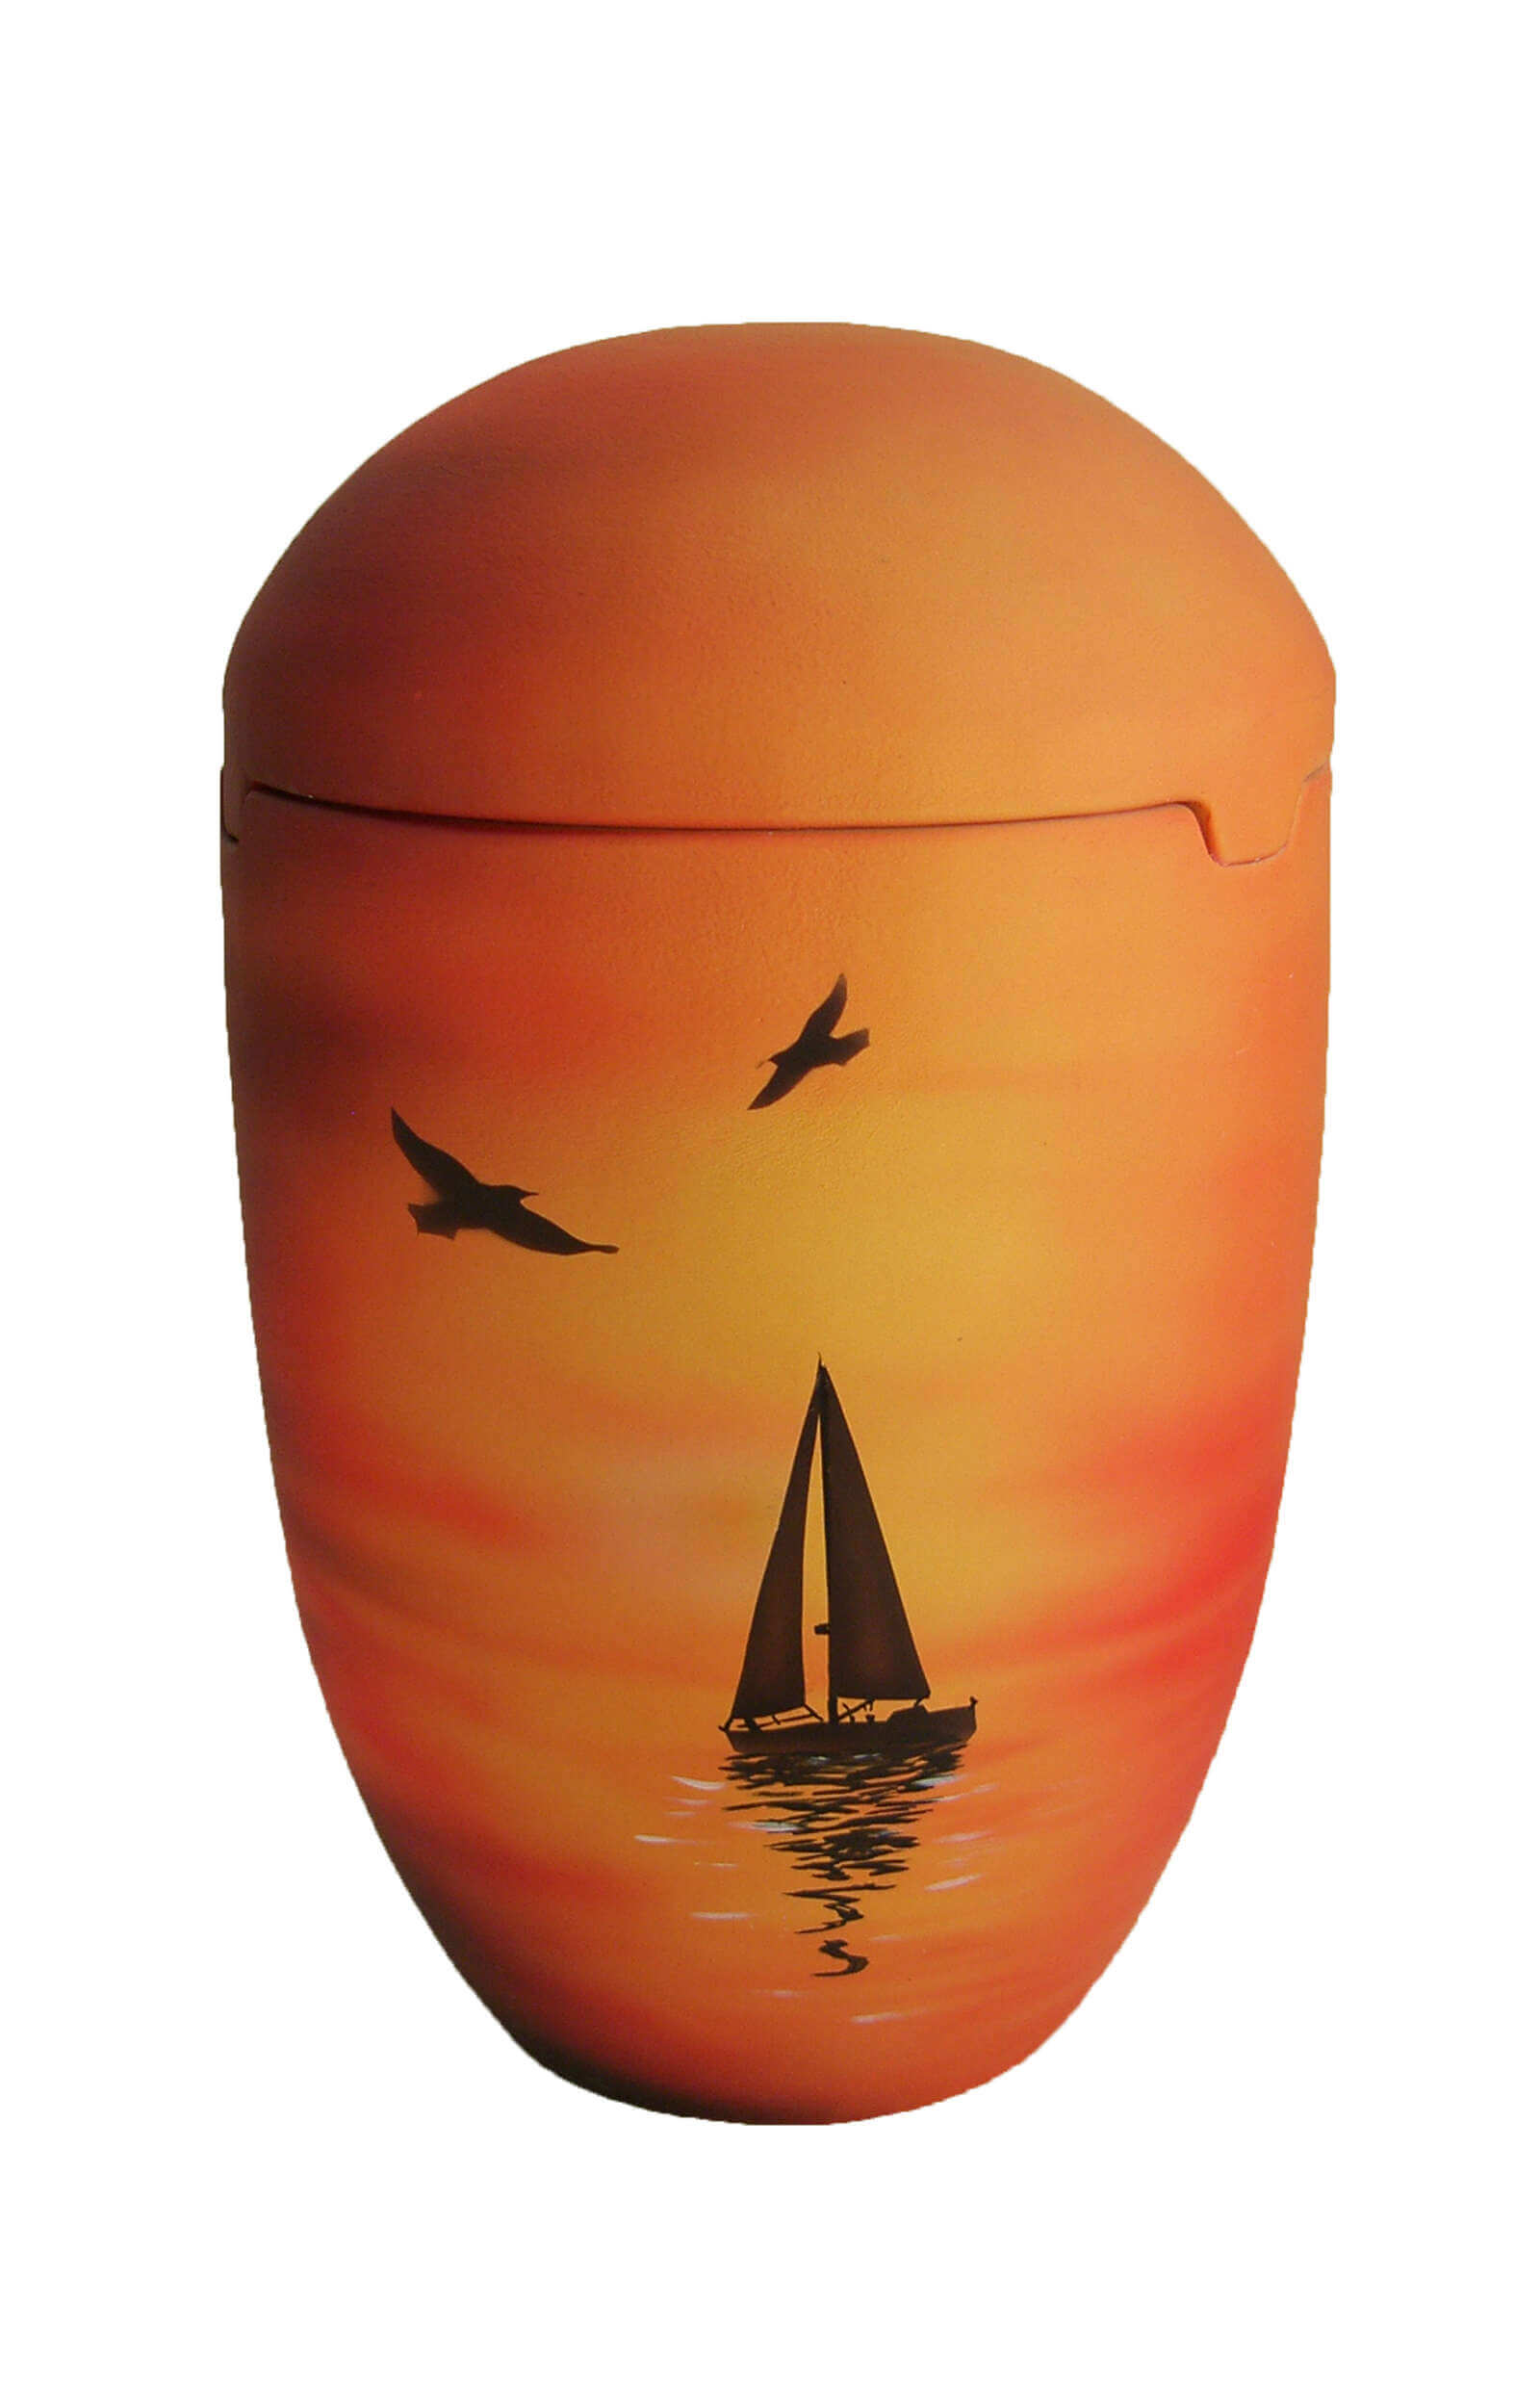 en SOB7027 sea urn sunset sailing boat yellow red orange funeral urns for human ashes on sale